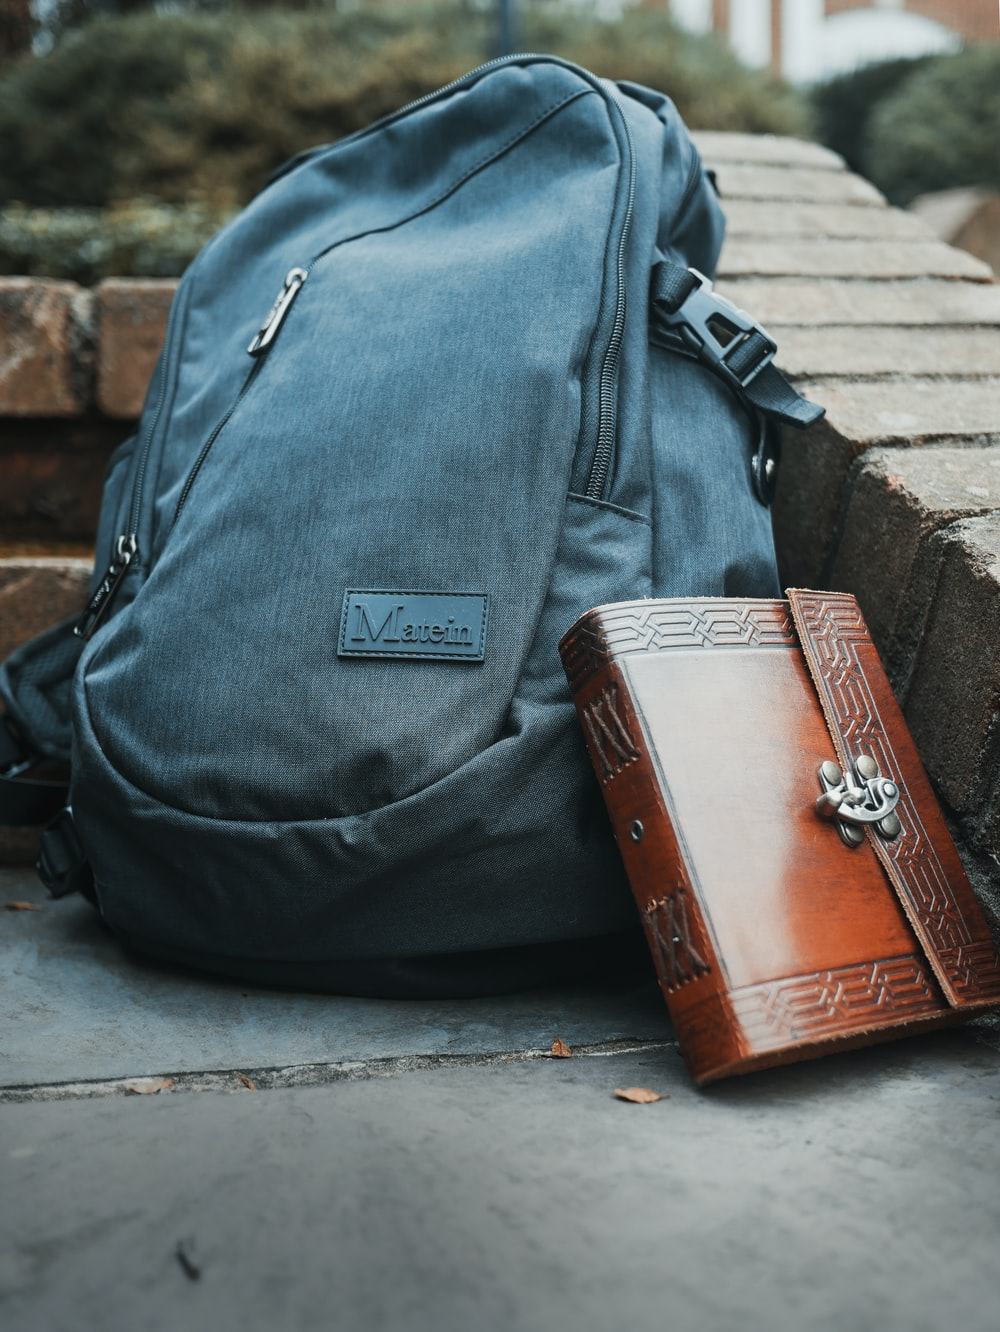 brown leather briefcase and gray Matein bag on concrete slab